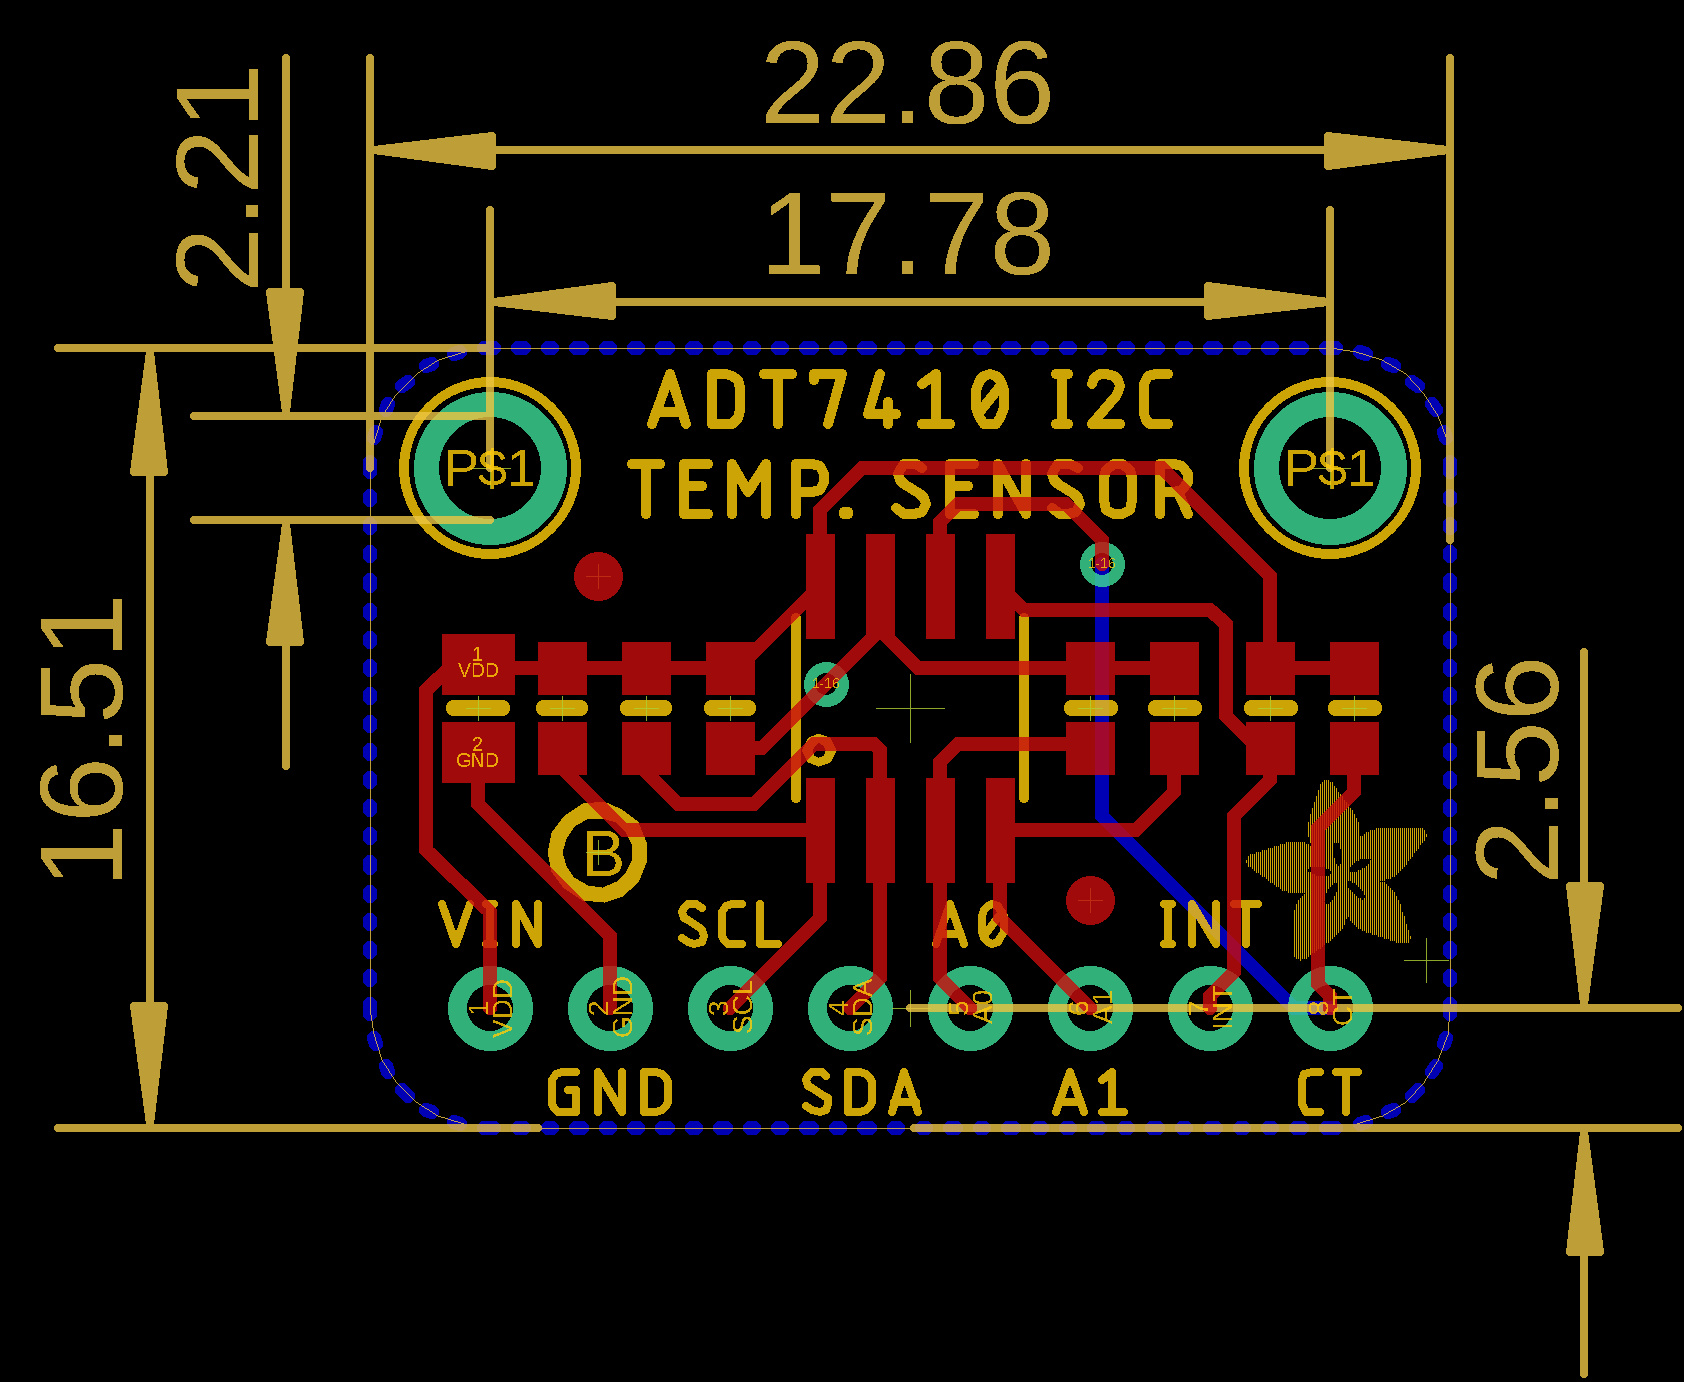 temperature___humidity_Adafruit_ADT7410_Fab_Print.png